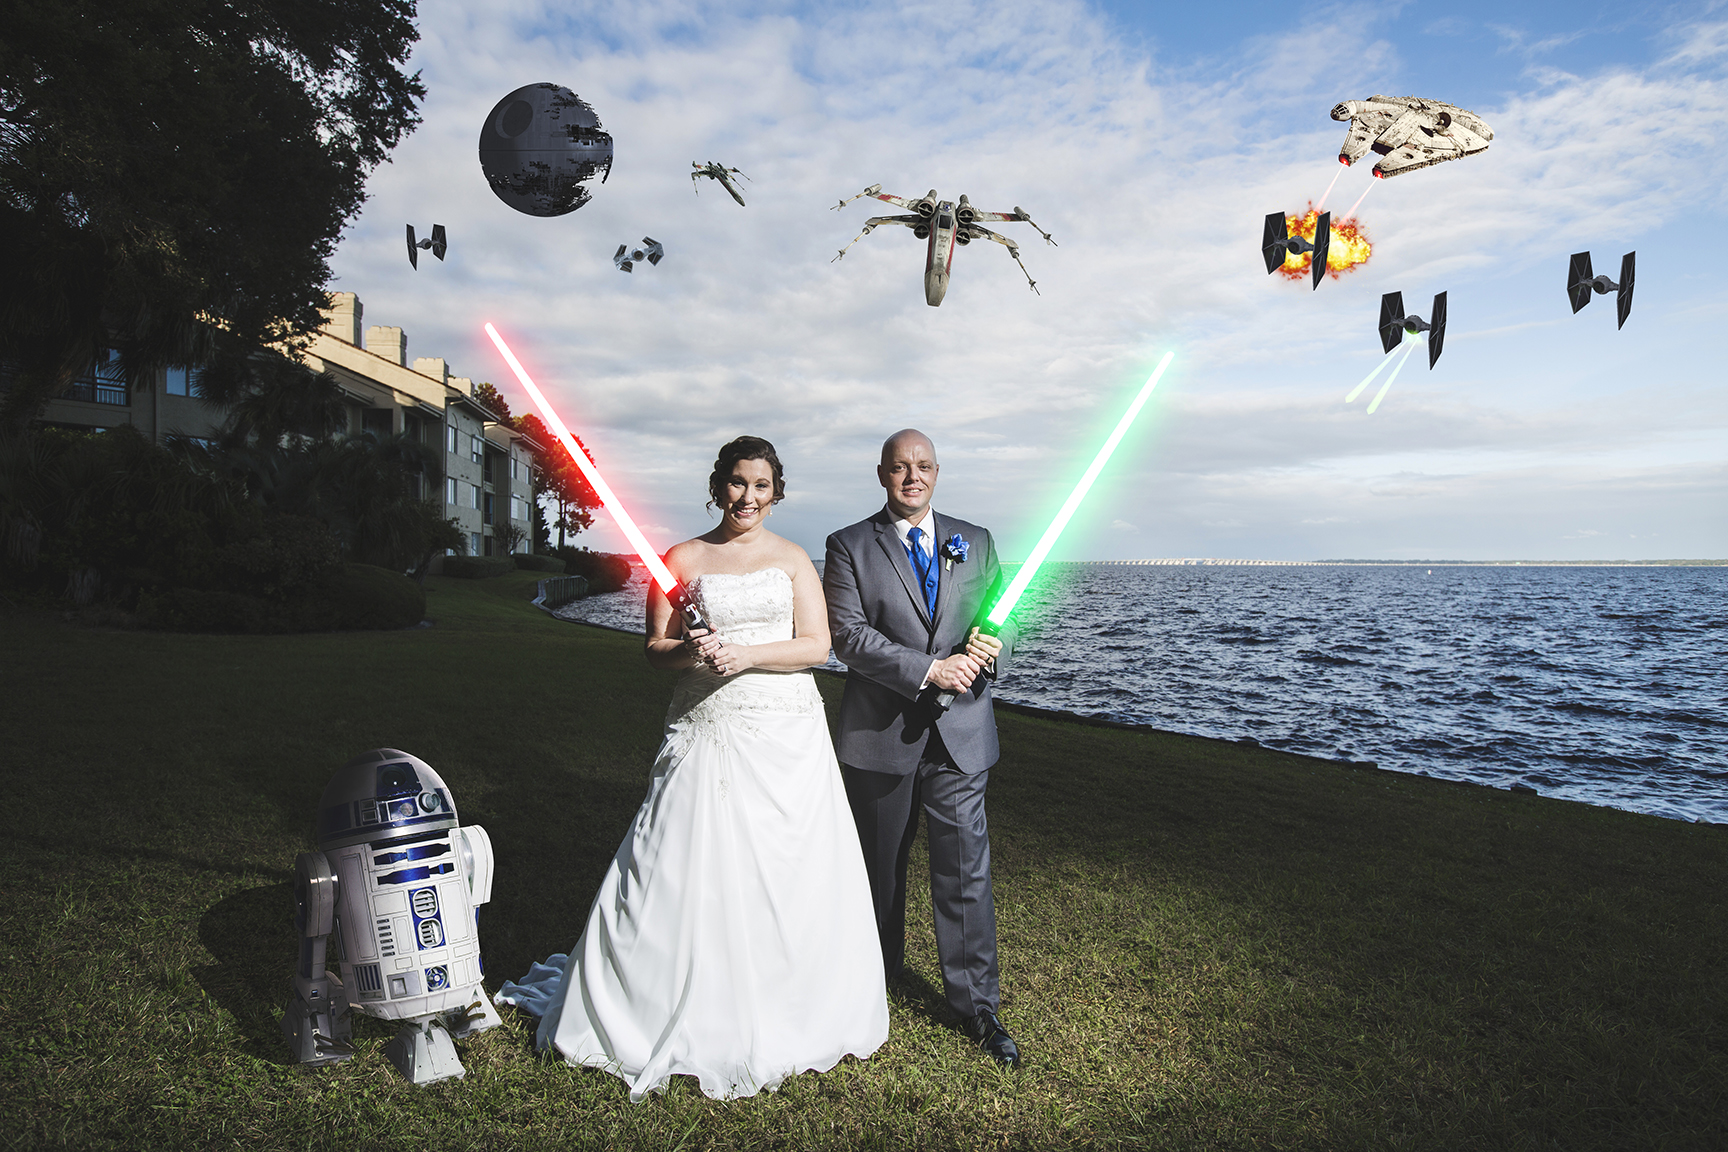 adam-szarmack-star-wars-wedding-jacksonville-photographer-37.jpg